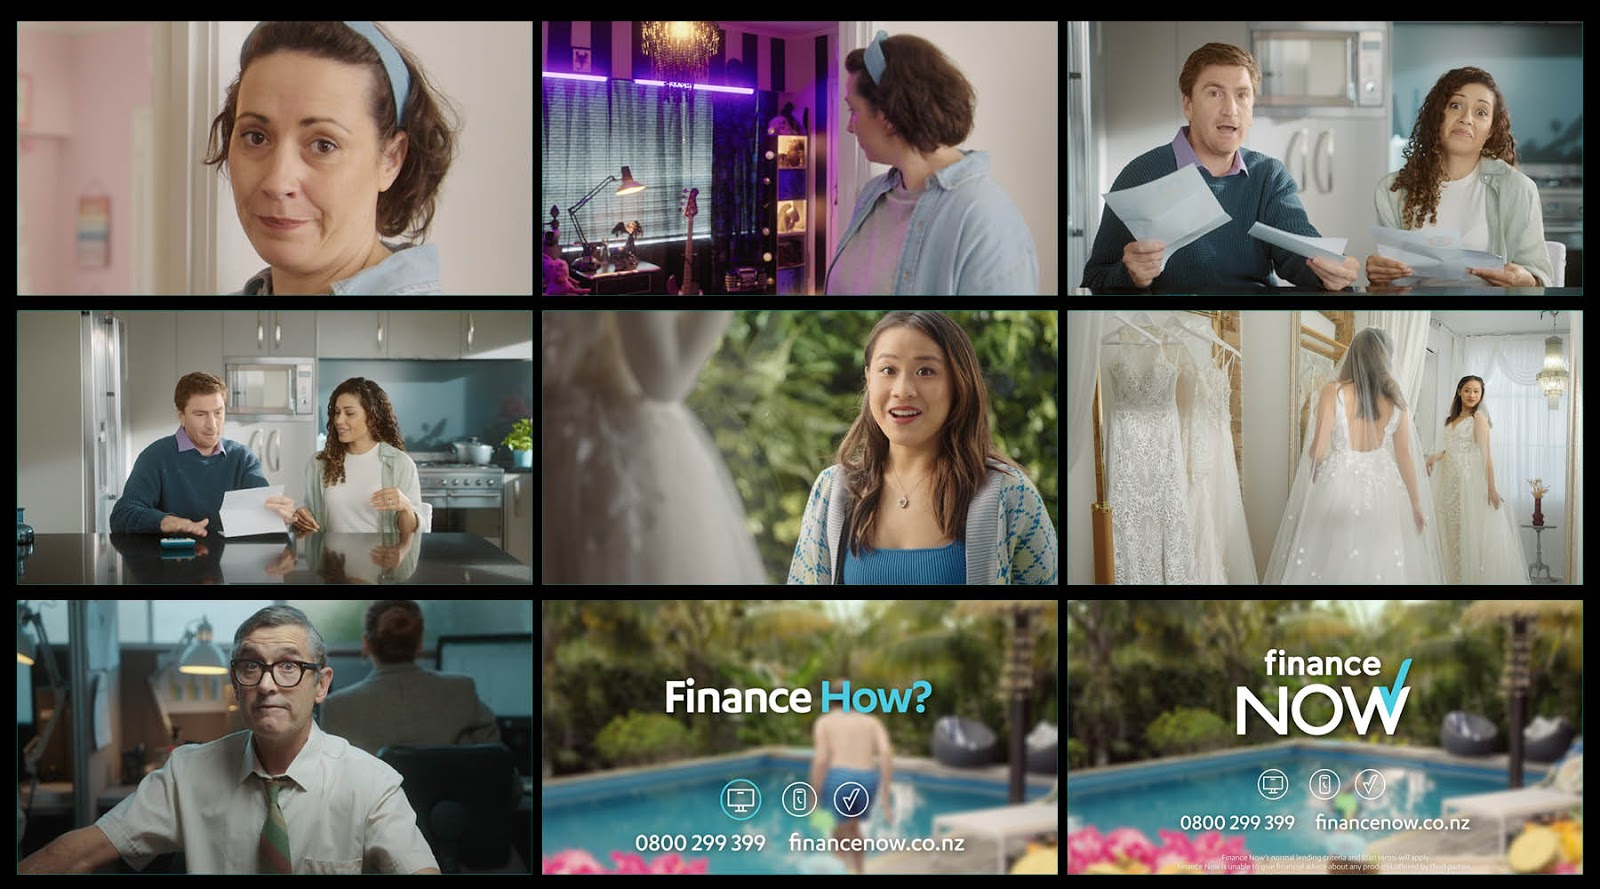 Finance How? Finance Now launches new consumer campaign via Strategy